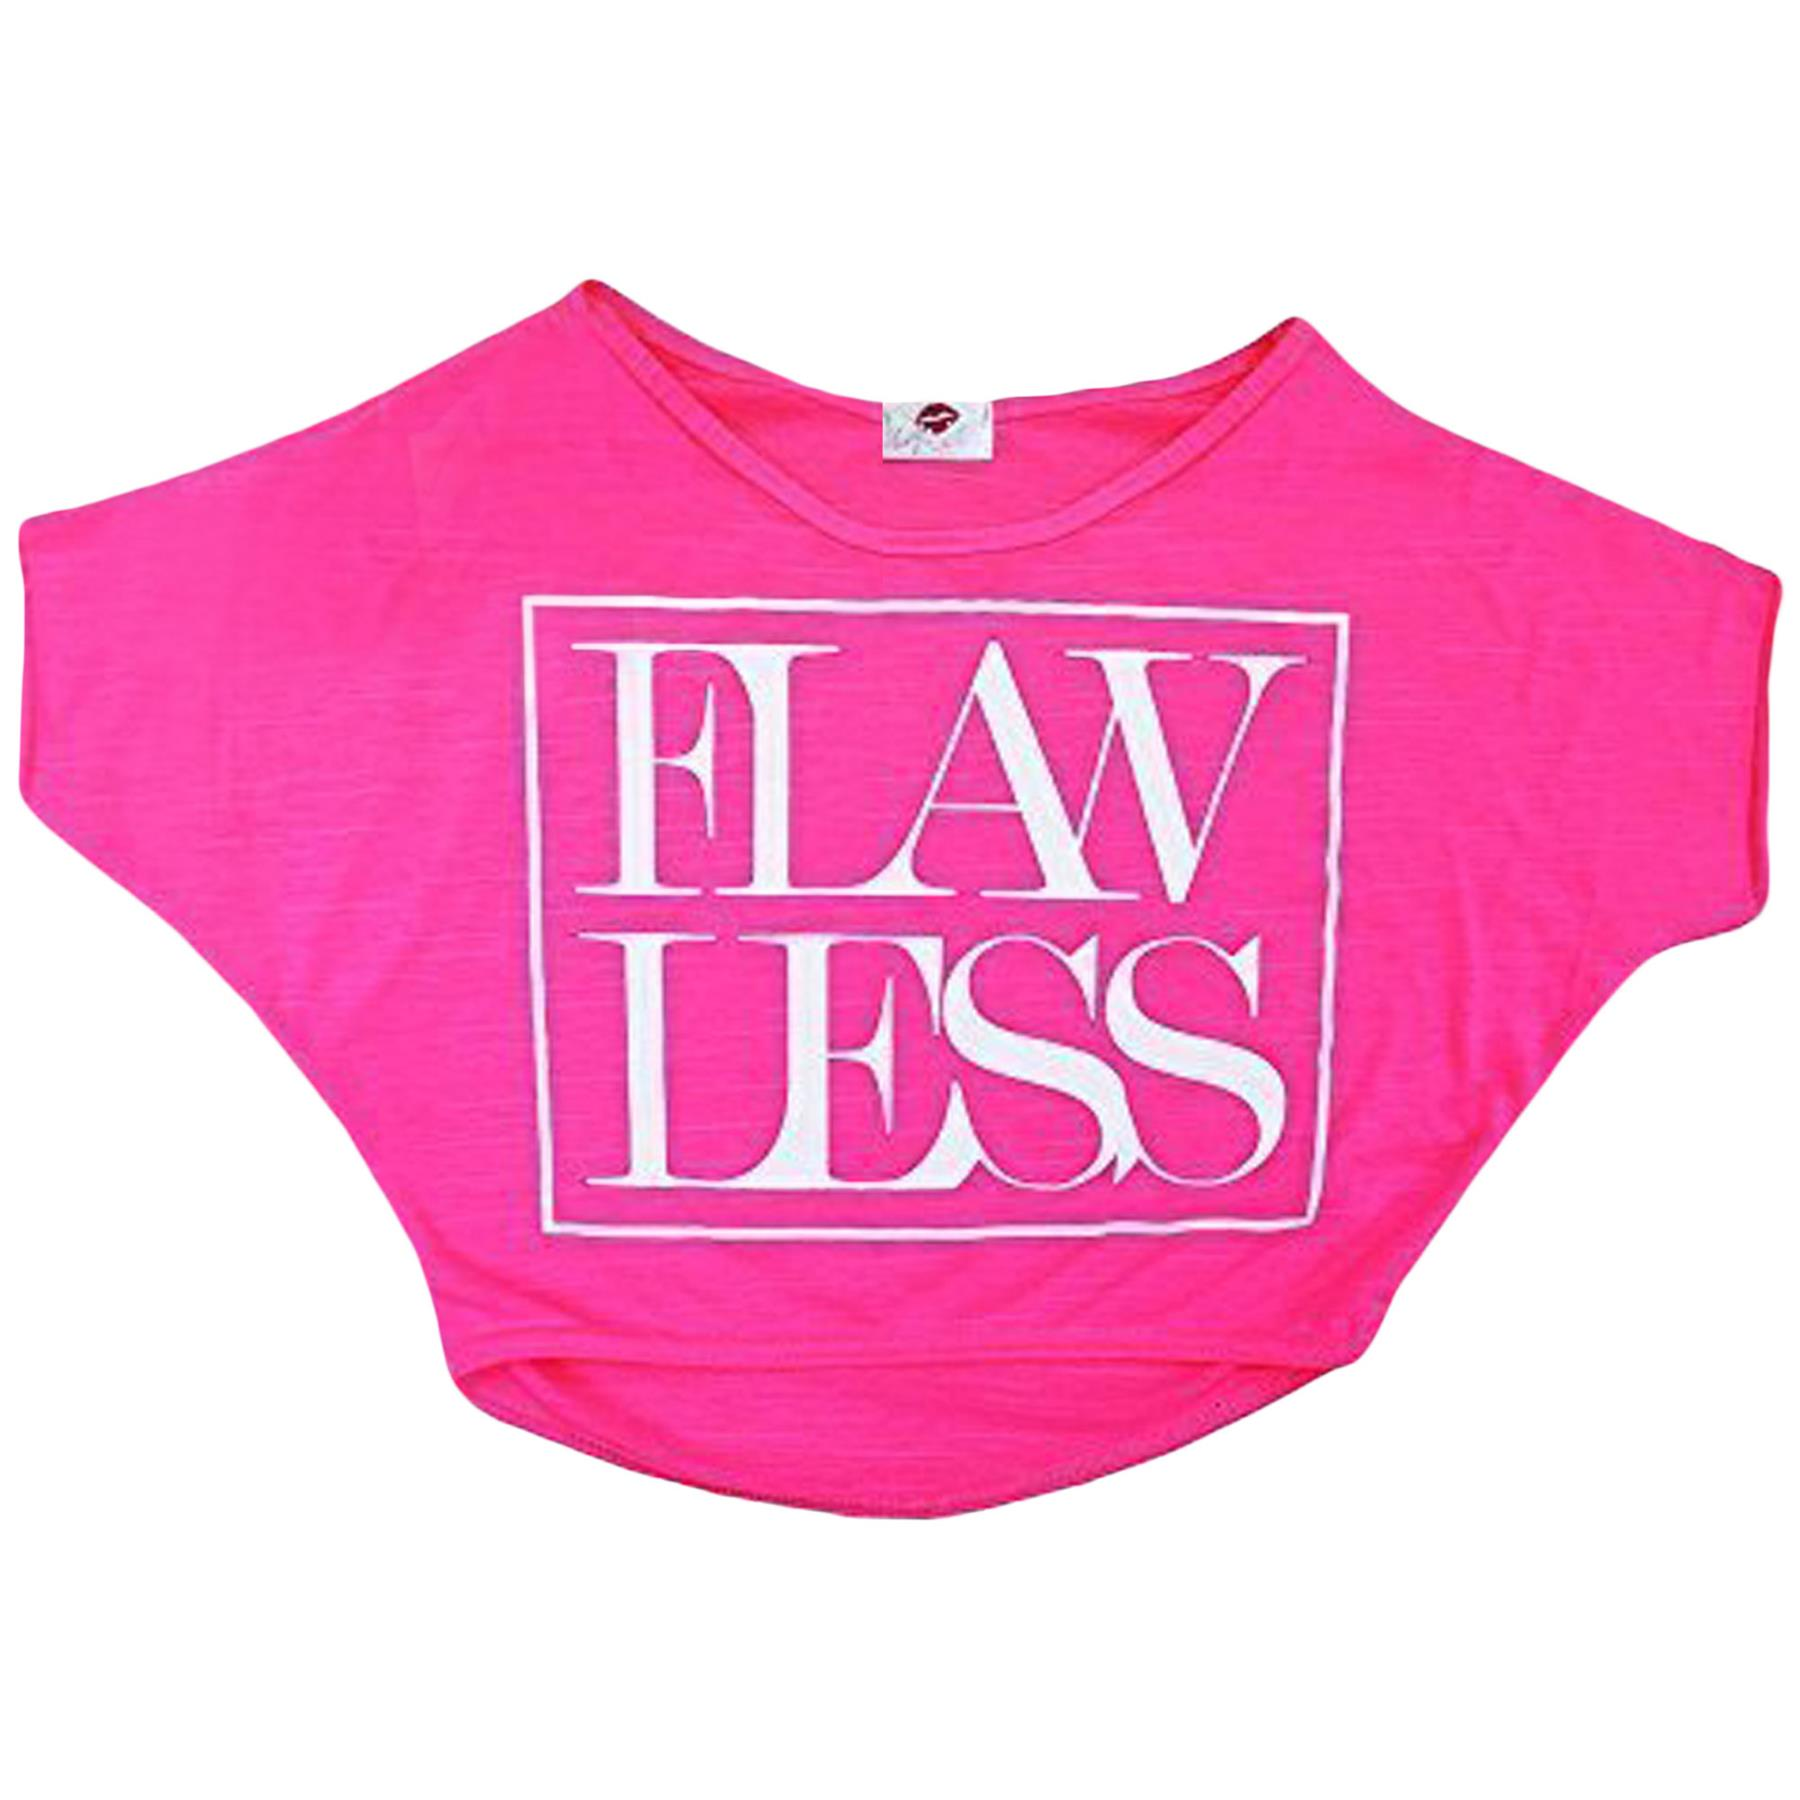 Kids-Girls-New-Season-034-FLAWLESS-034-Print-Crop-Top-Stylish-Fashion-T-Shirt-Age-7-13 miniatuur 12